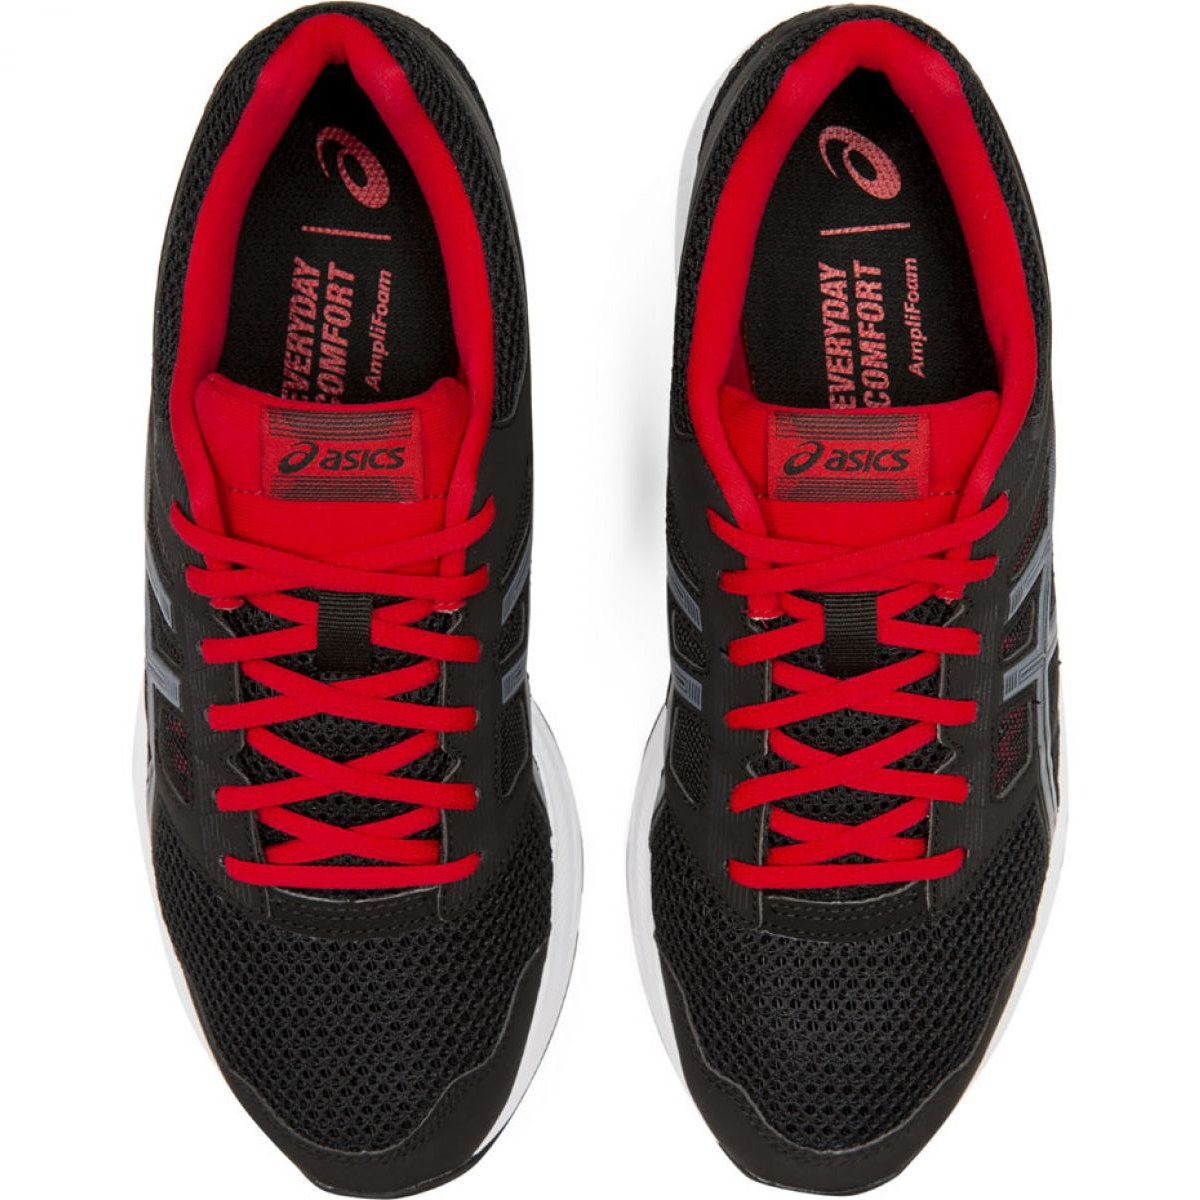 Training Running Sport Asics Shoes Asics Gel Contend 5 M 1011a256 005 Black Red Black And Red Shoes Asics Running Shoes